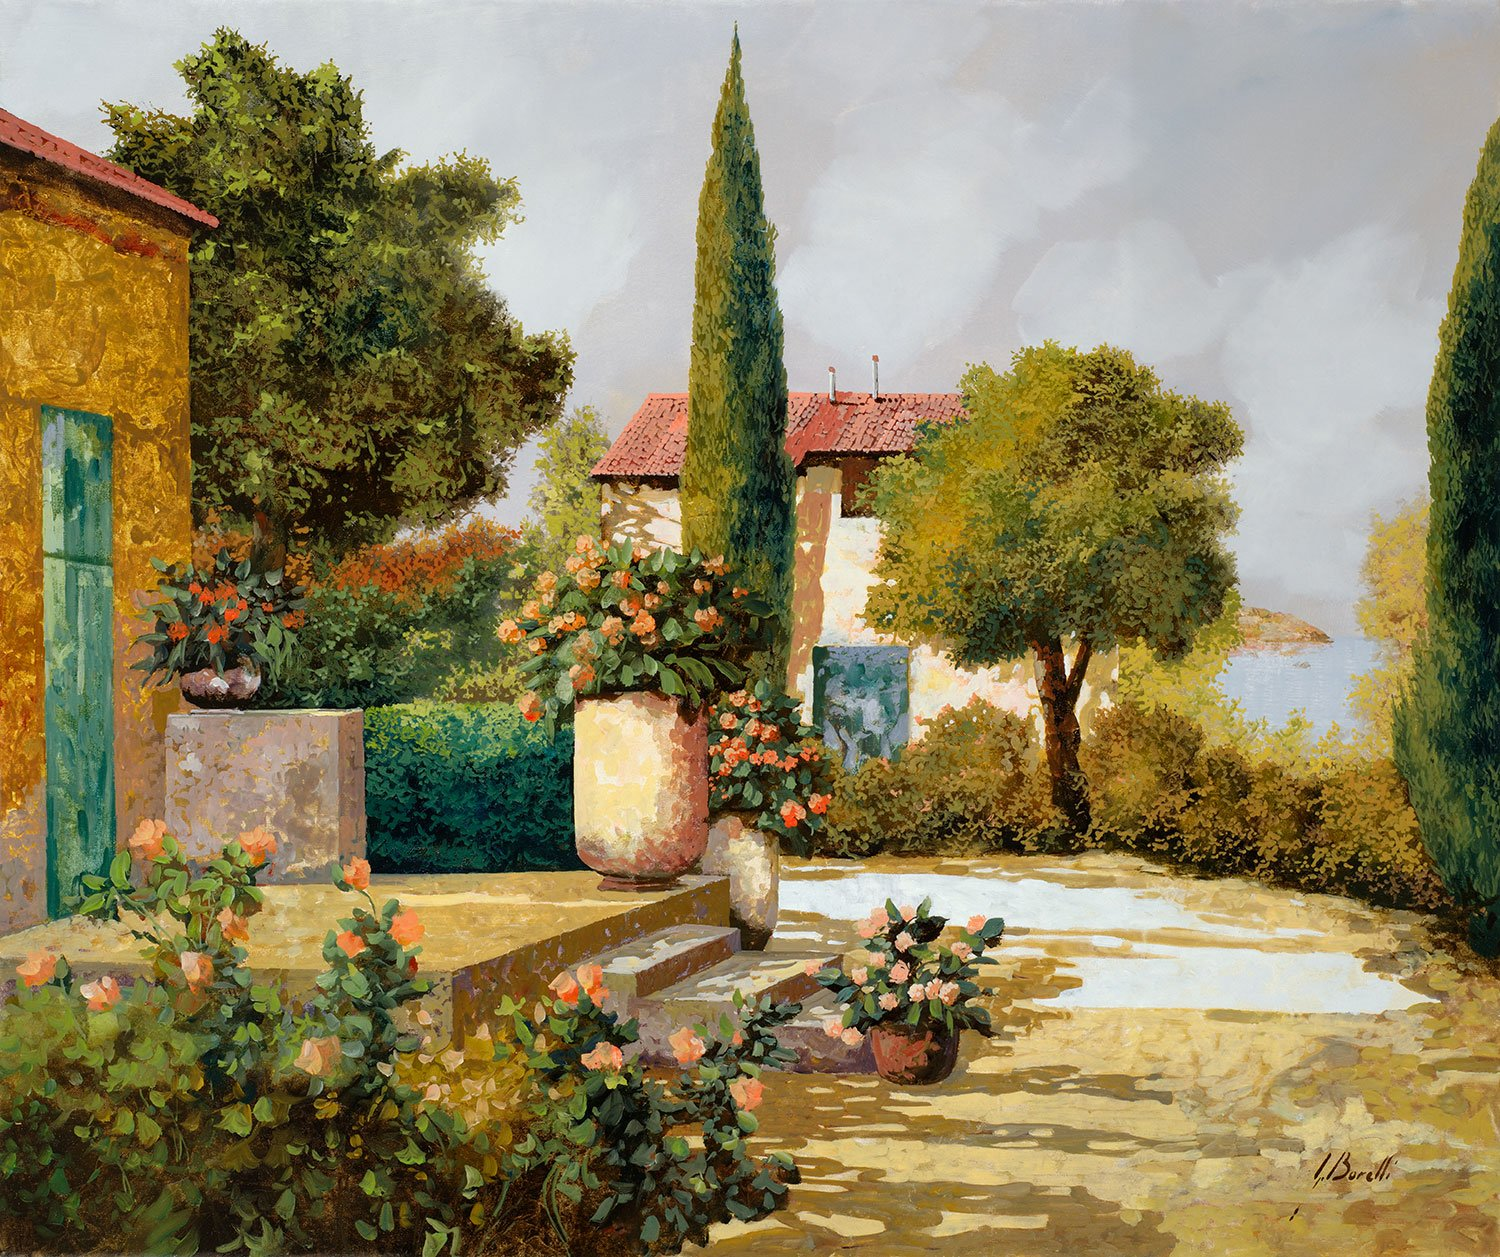 Fototapeten: The cypress (Guido Borelli)